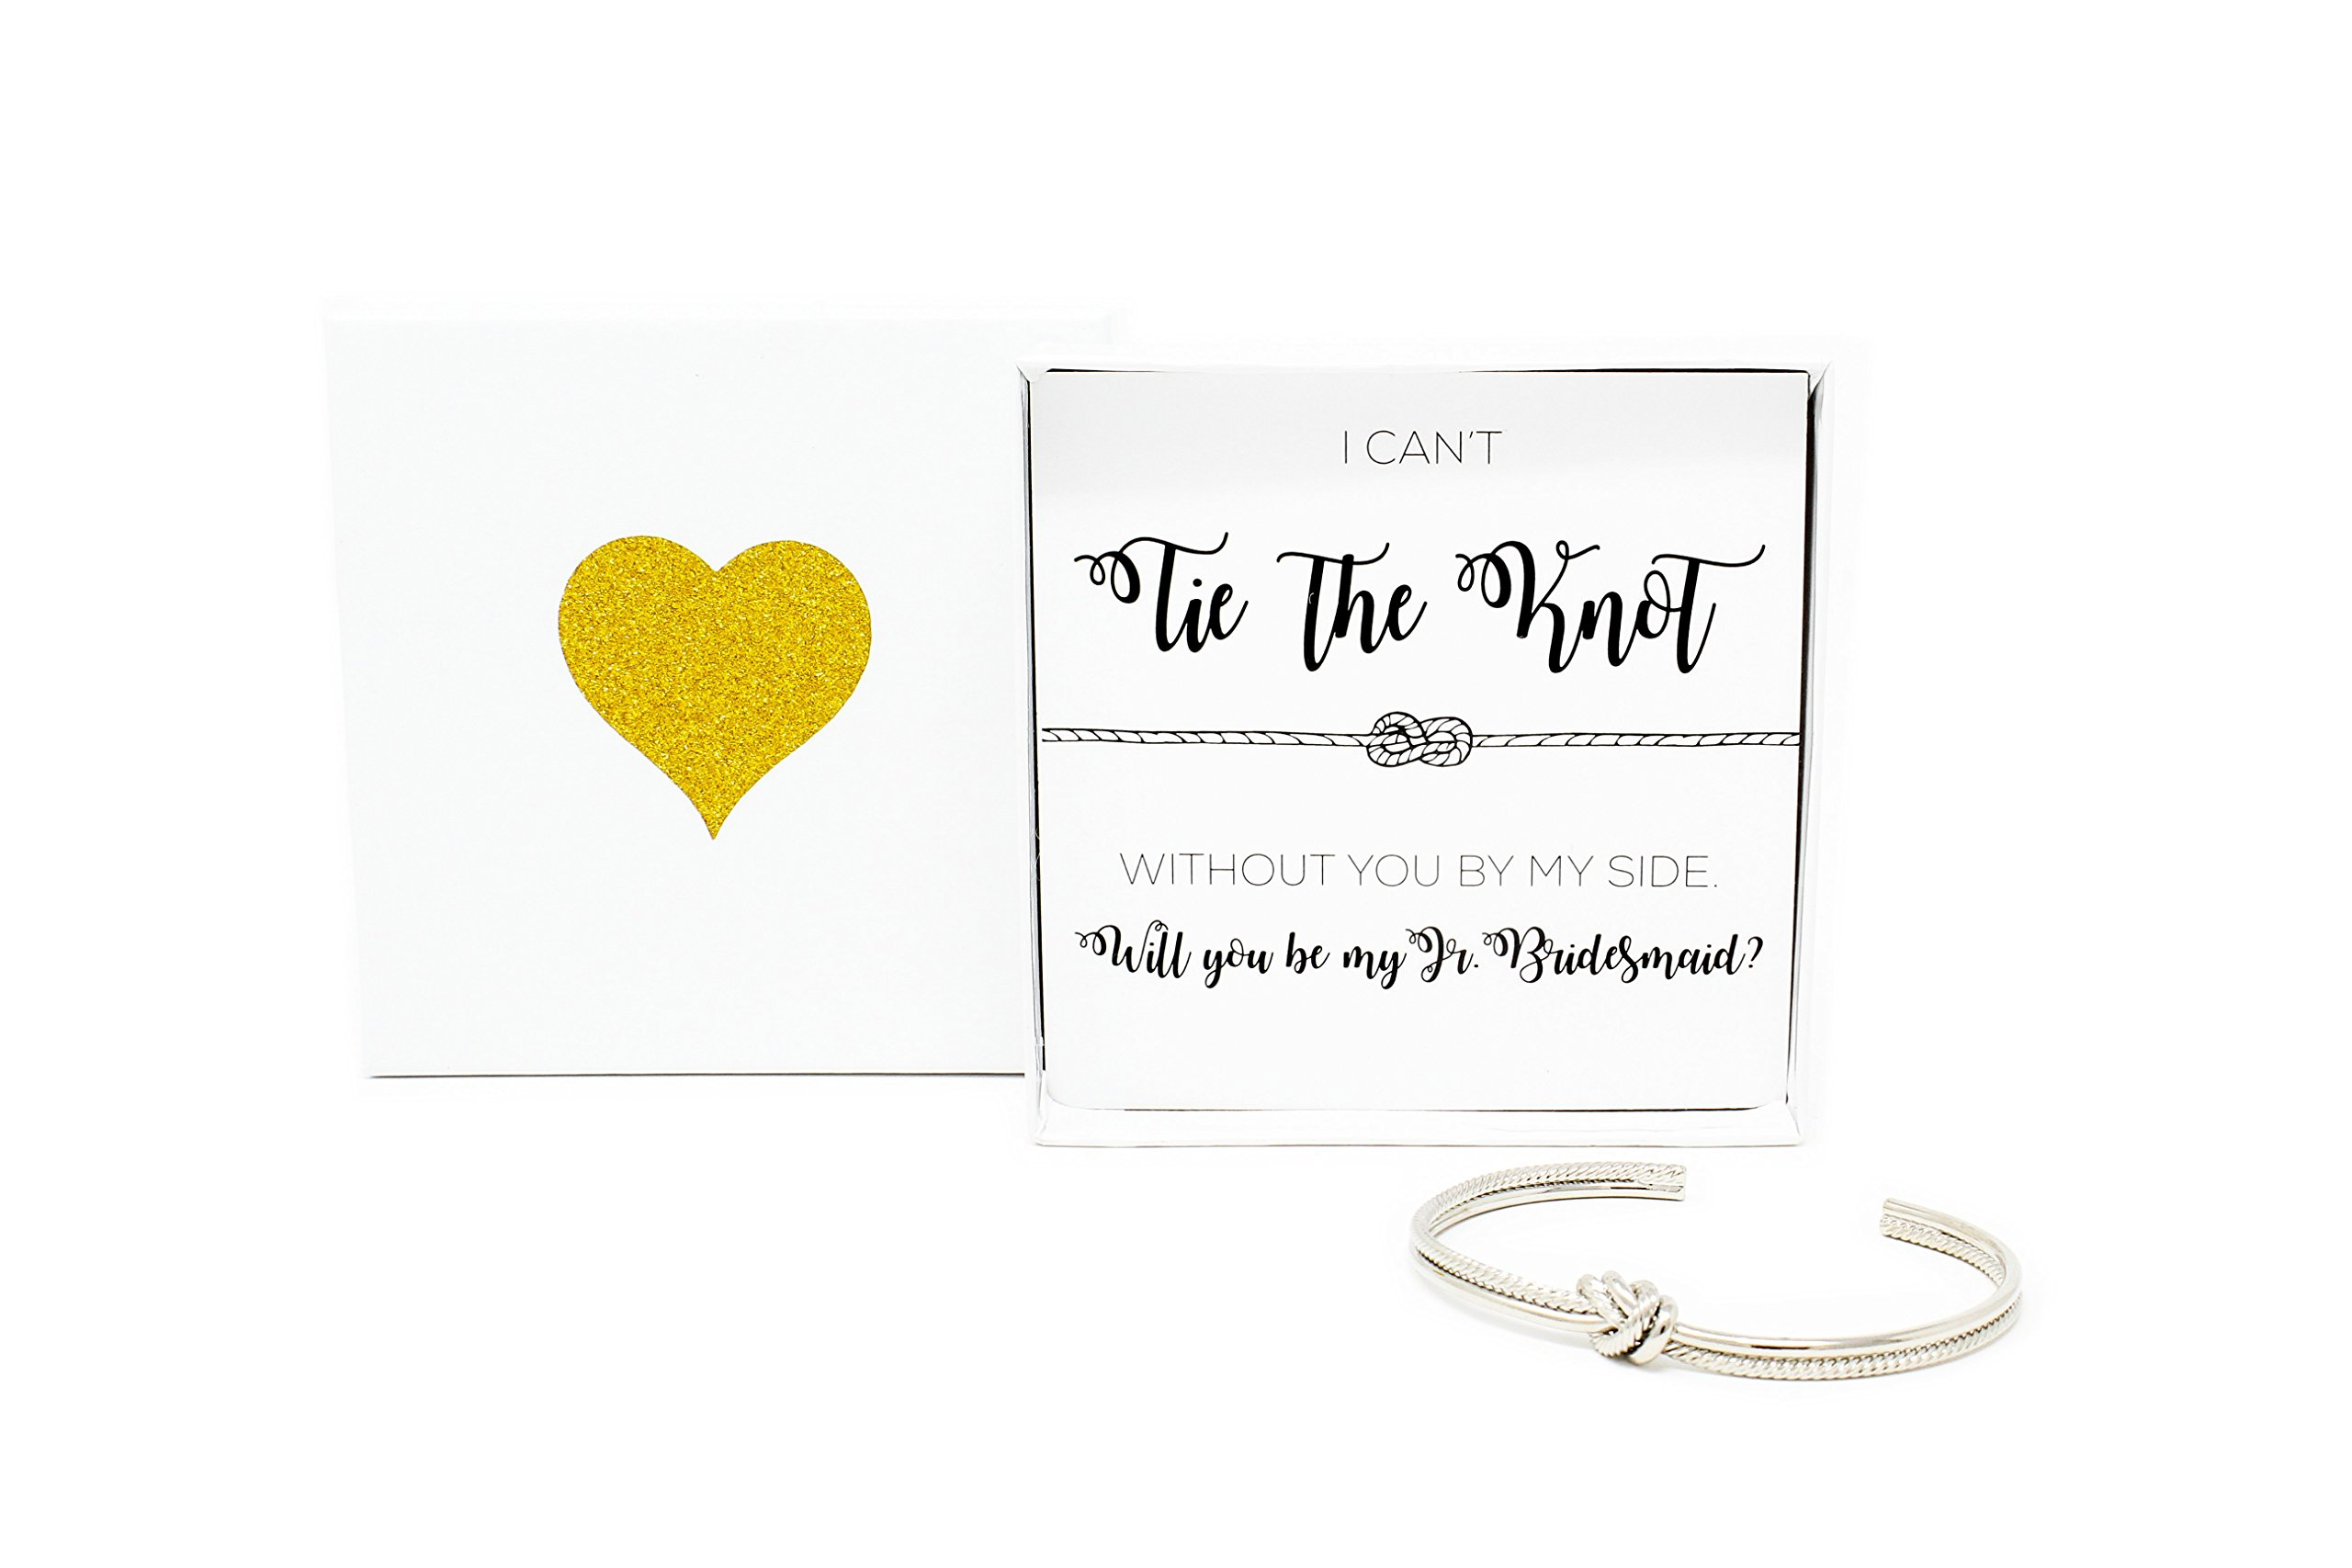 Lemon Honey Jewelry Bridesmaid Gifts - Tie The Knot Jr. Bridesmaid Bracelet w/Gift Box, Sailor Bridal Party Gift Sets, Adjustable Love Knot Cuff Bracelet (Gold, Rose Gold, Silver) (Silver)